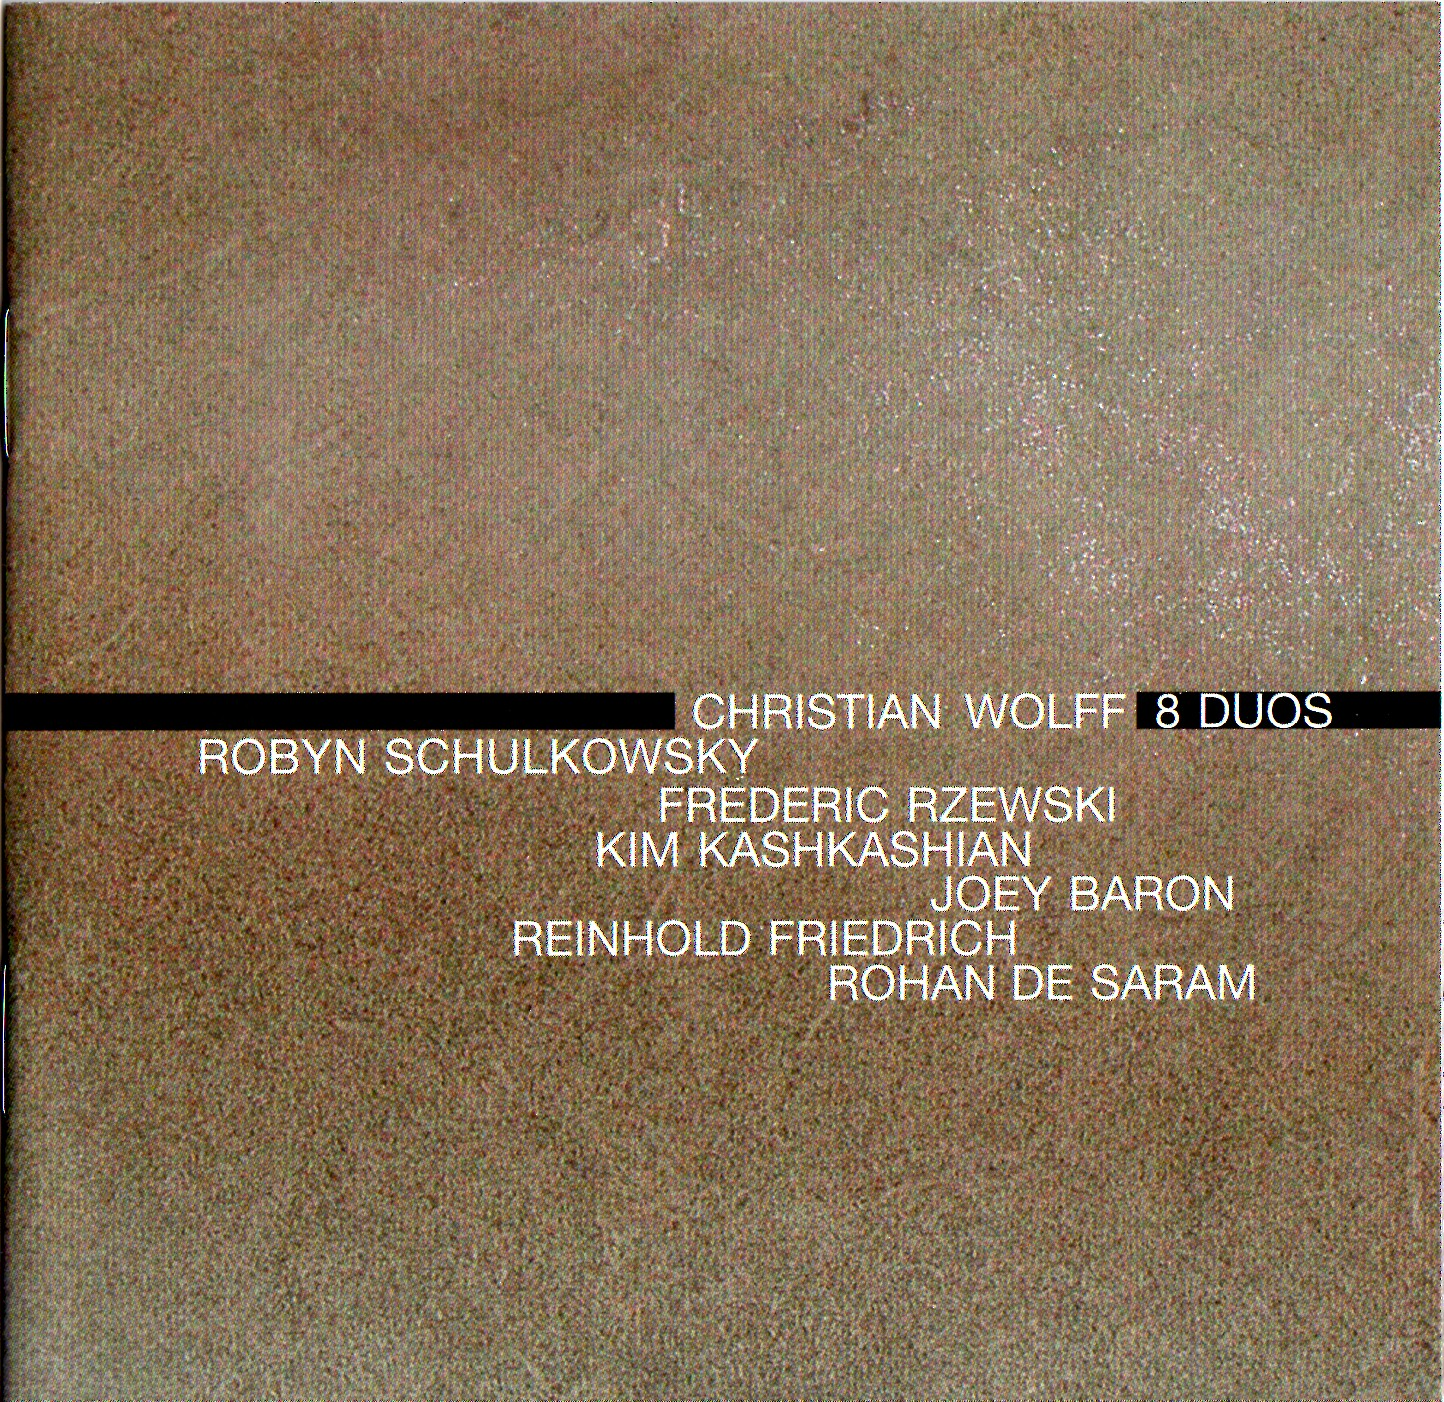 Christian Wolff CD